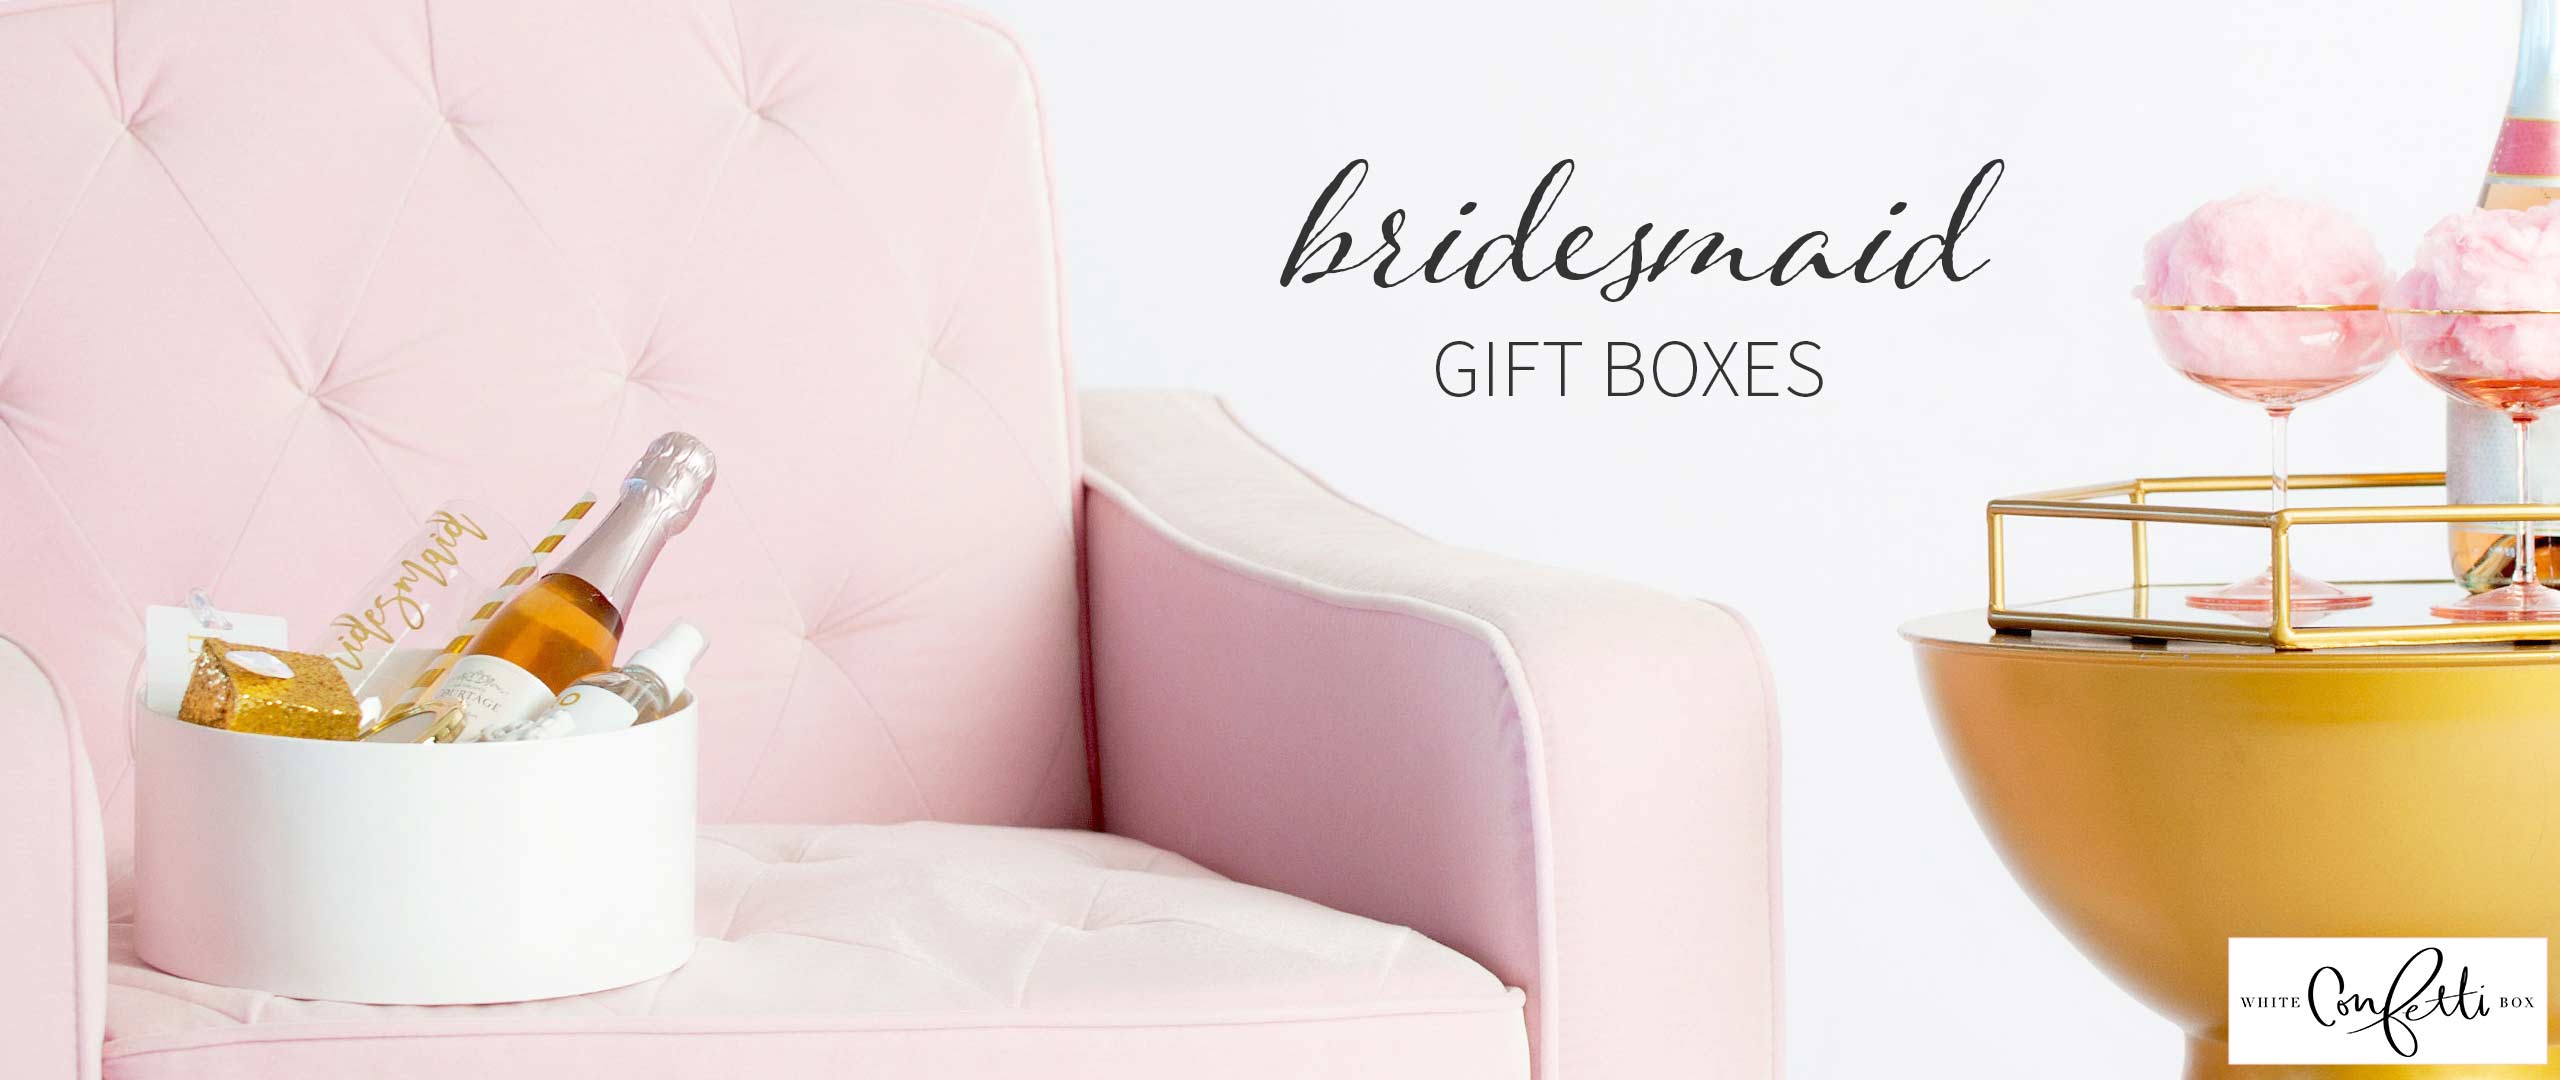 Bridesmaid Gift Boxes by White Confetti Box